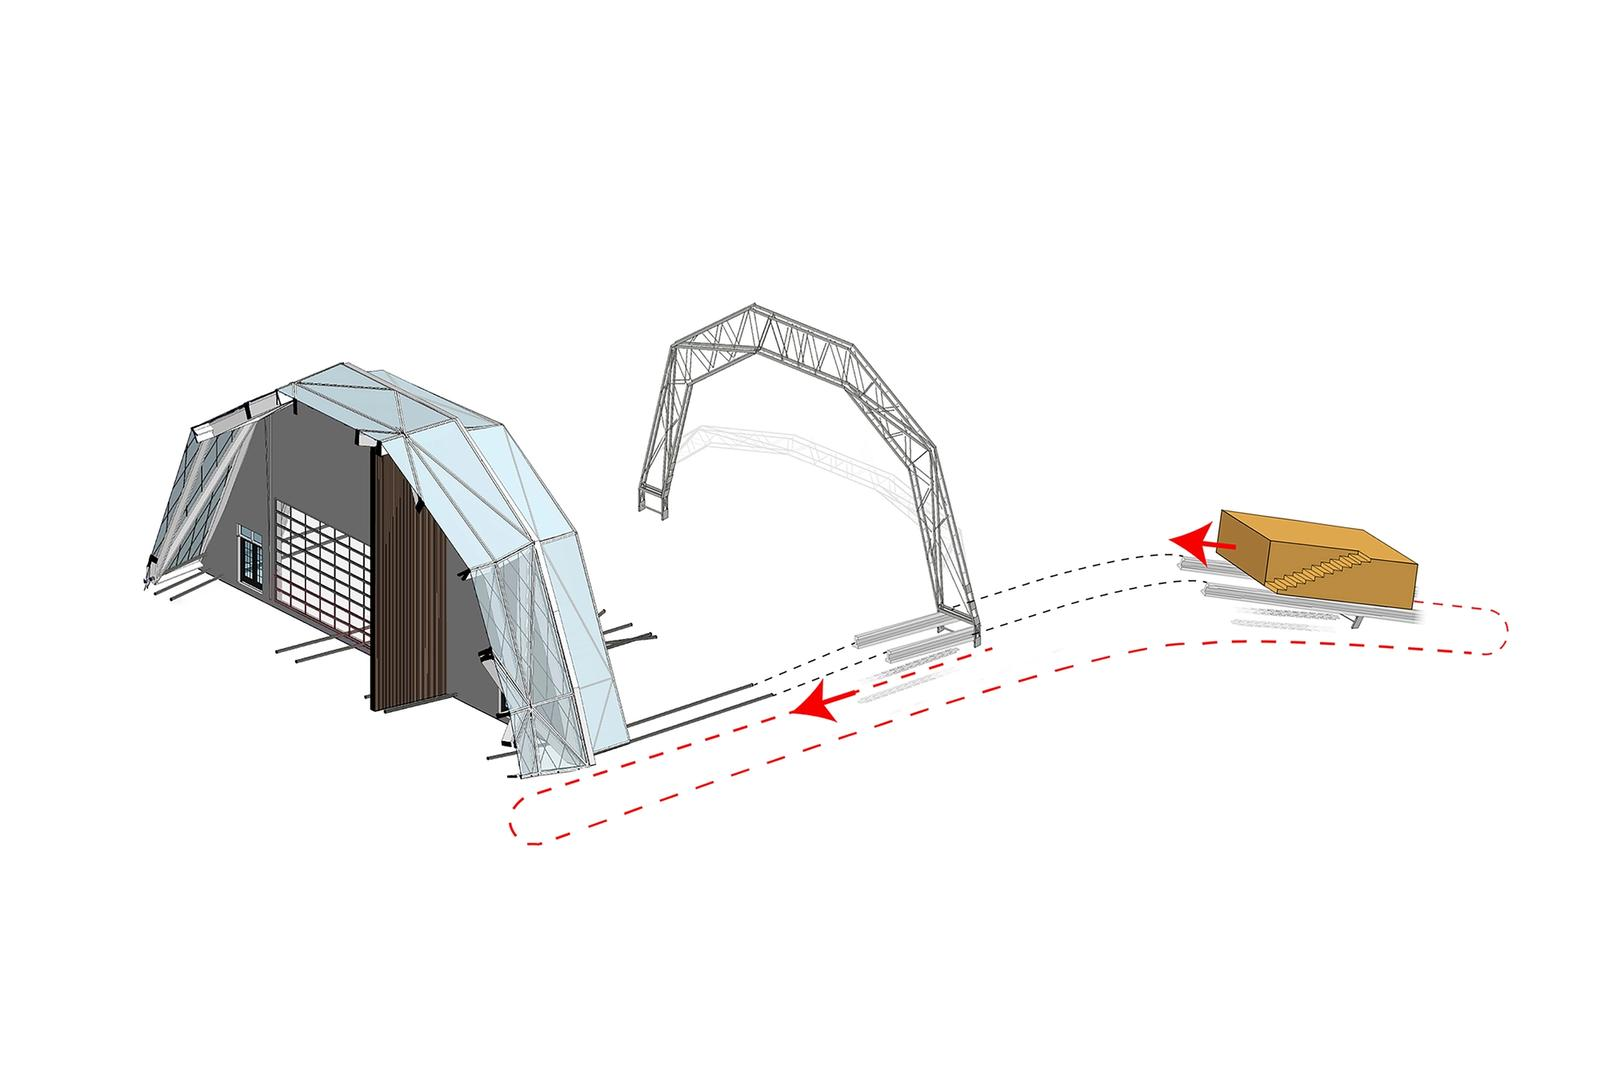 Schematic of Passive Kinetic Flood Mitigation Strategy